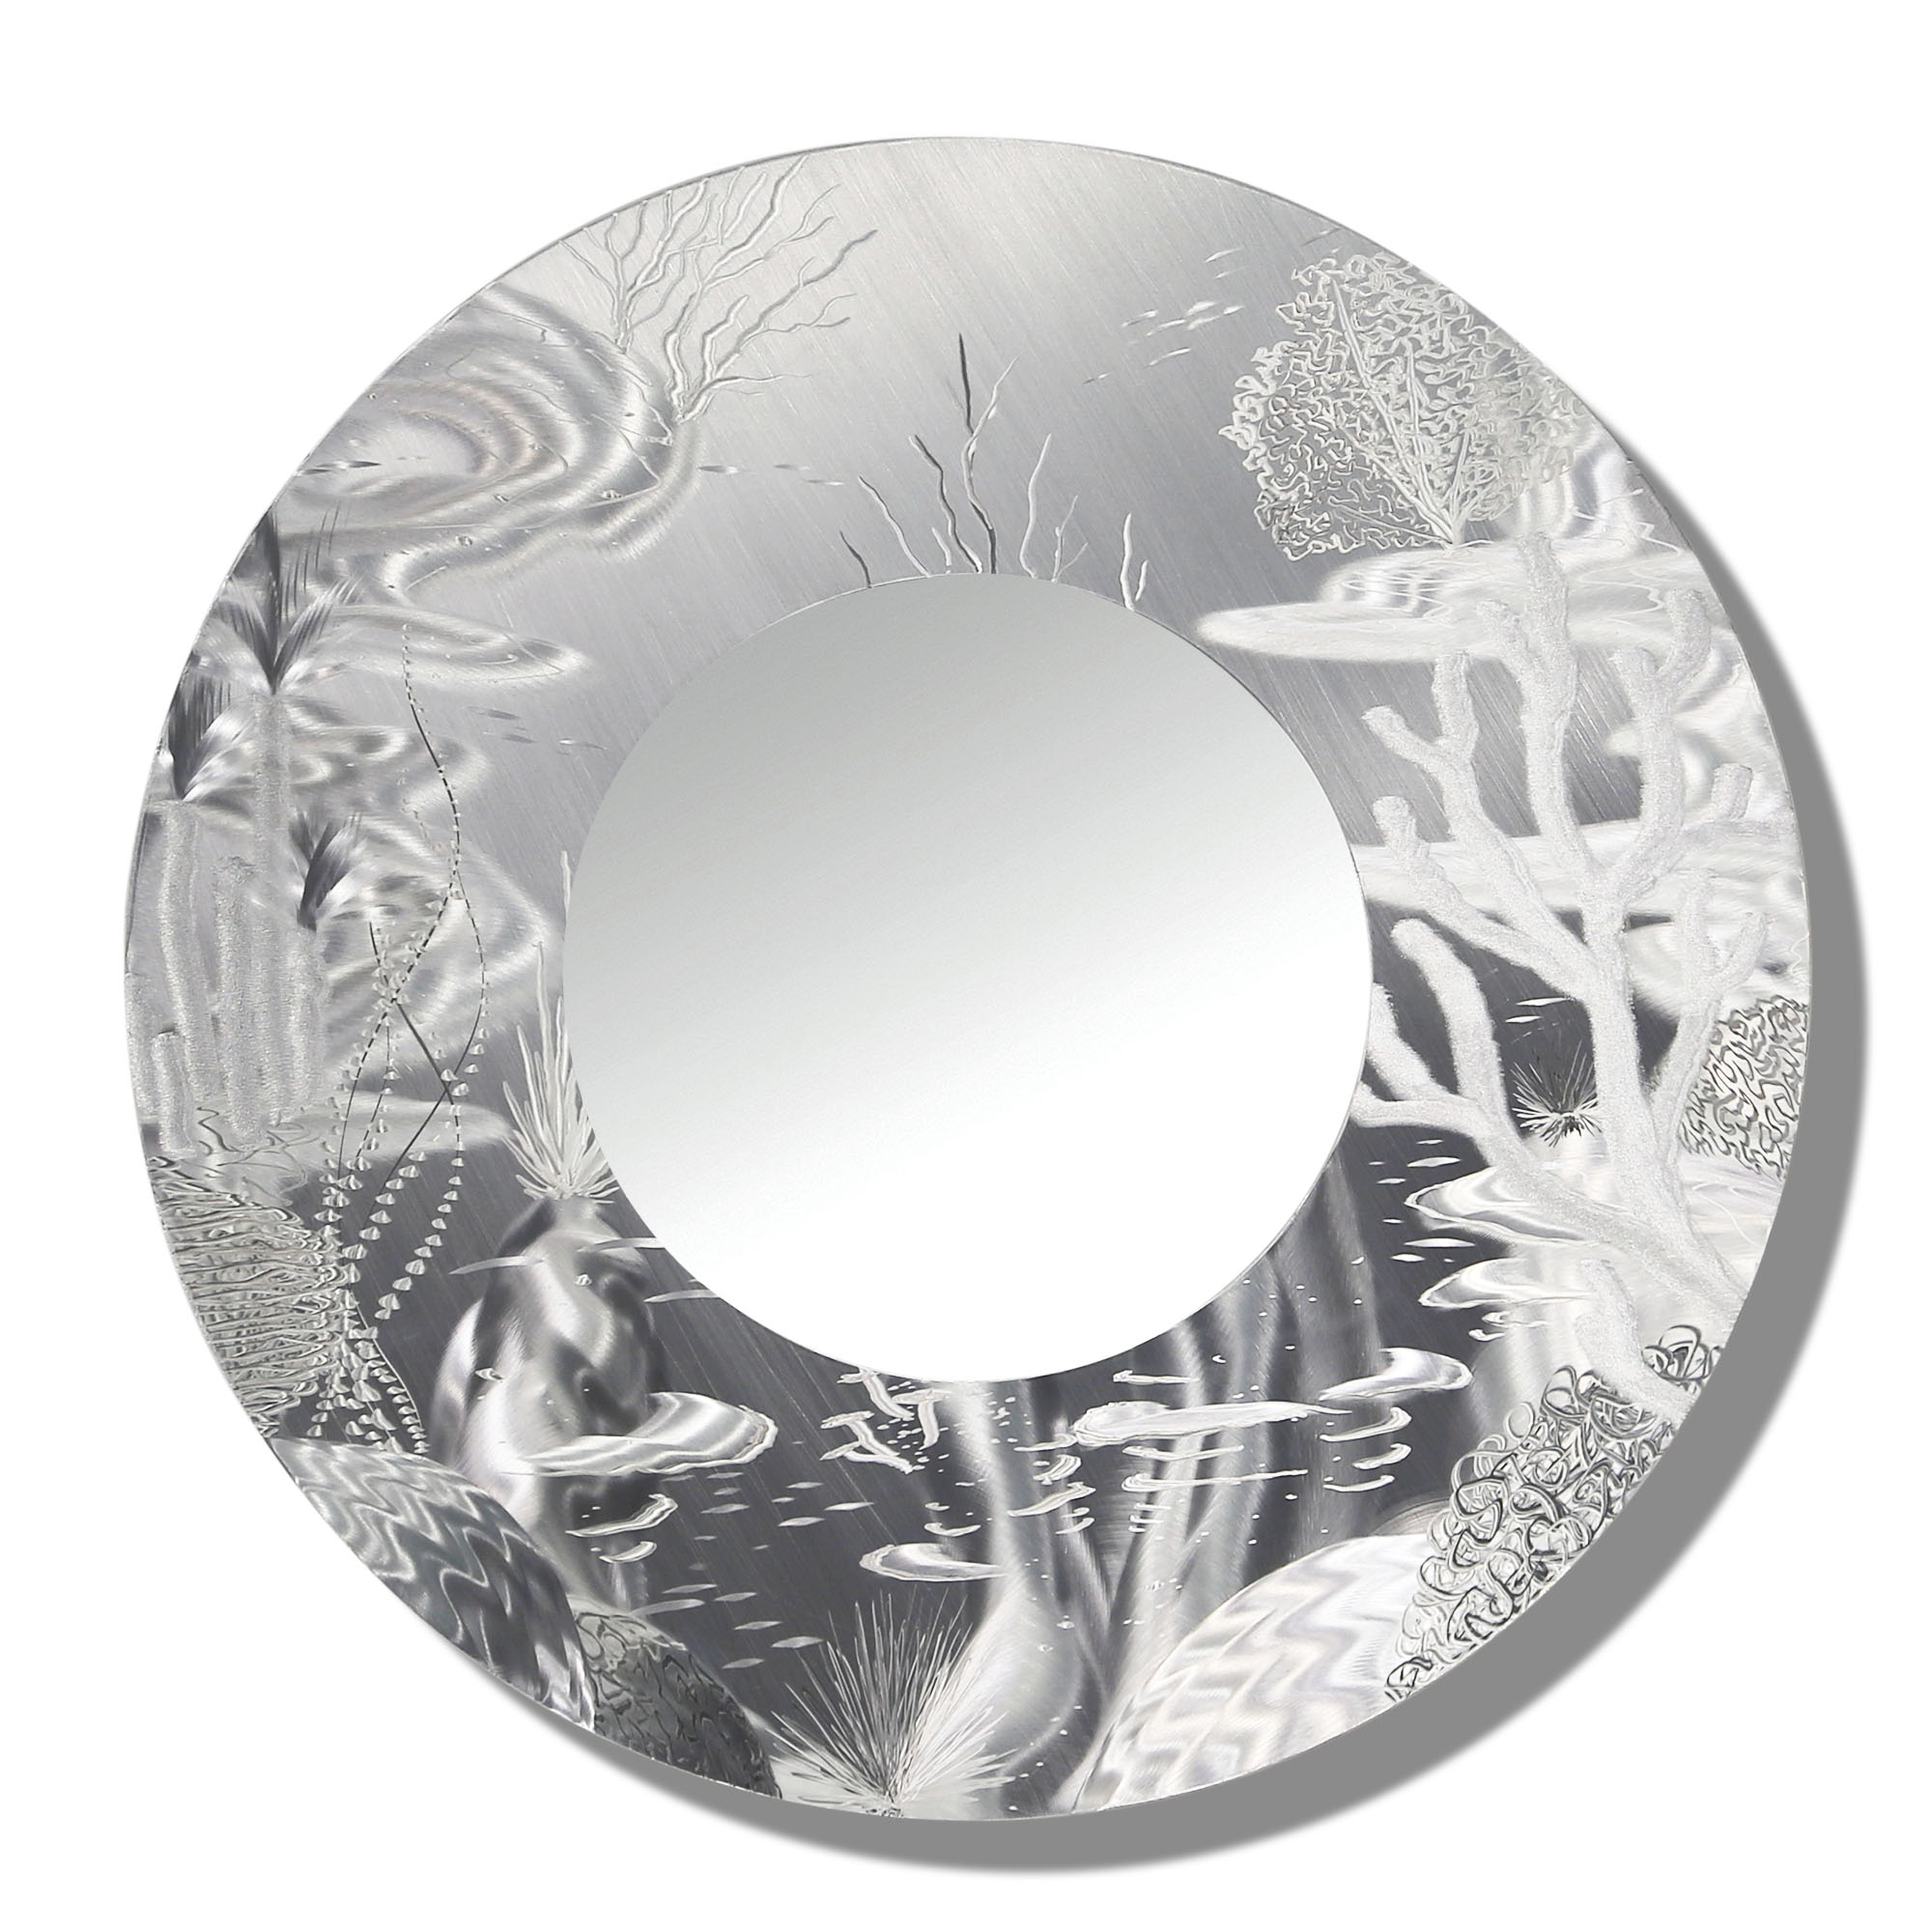 Latest Mirror 102 – All Natural Silver Abstract Marine Life Circle Wall Mirror –  Modern Metal Wall Accent Art Regarding Silver Round Wall Mirrors (Gallery 9 of 20)